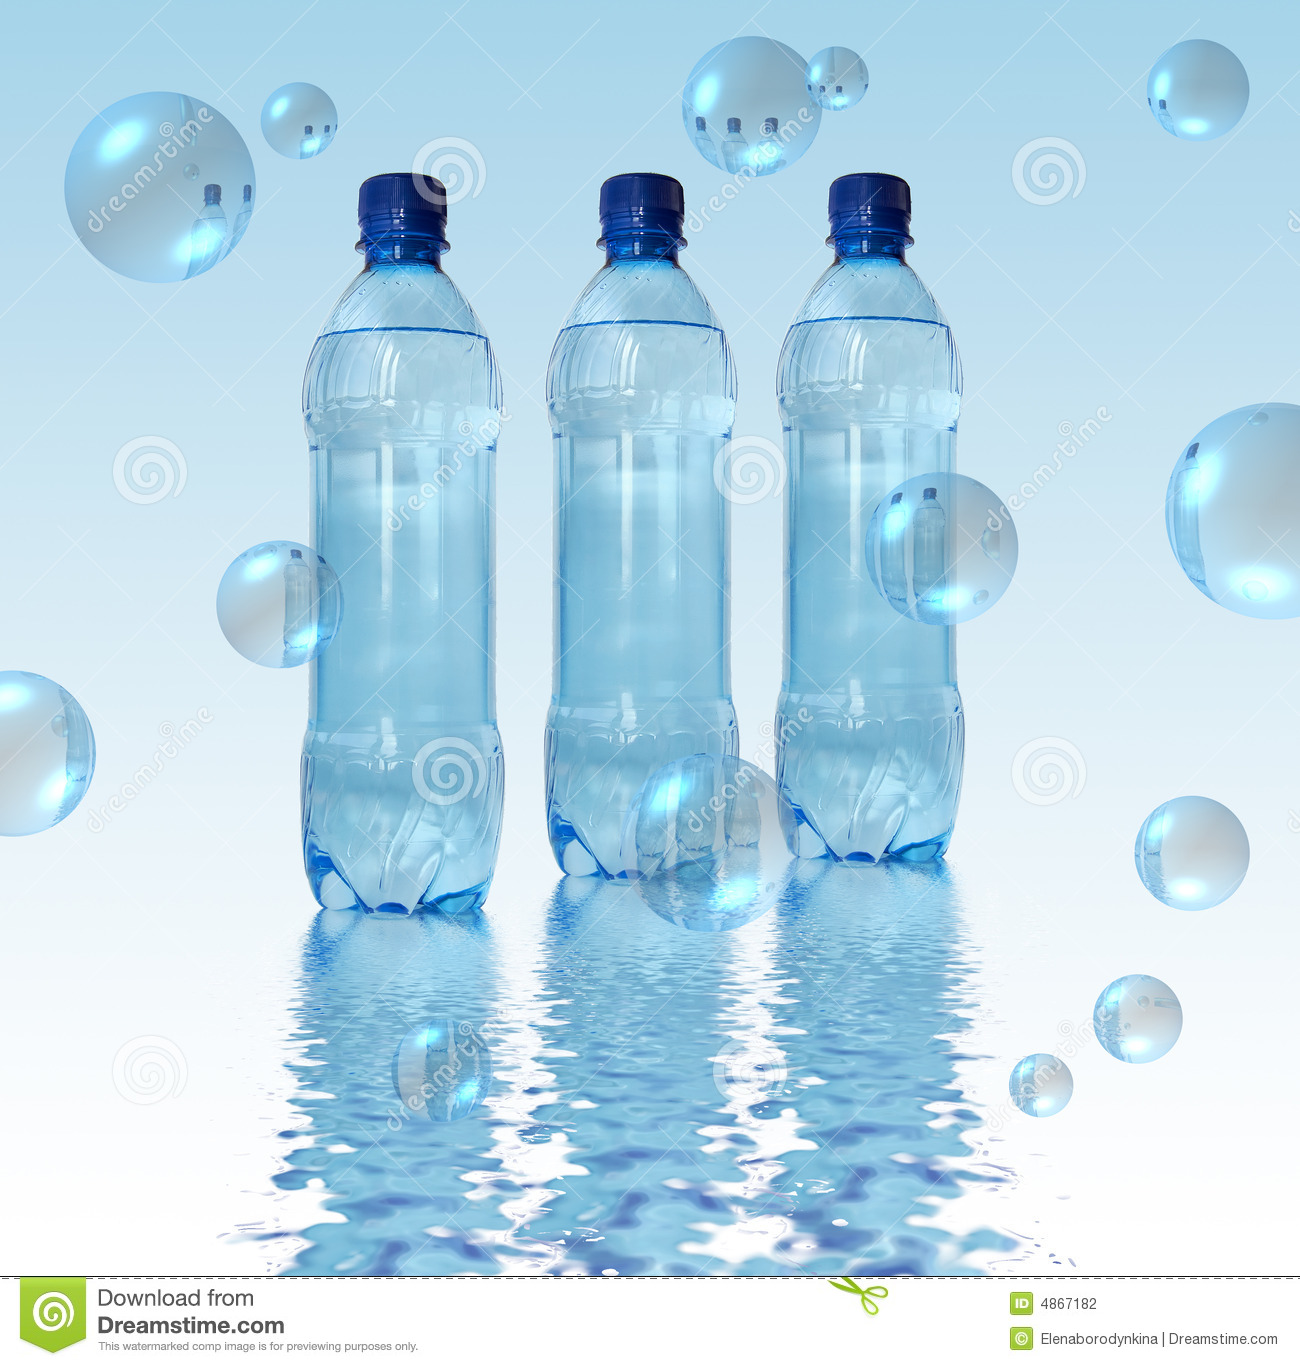 tap water vs bottled water research paper Bottled vs tap water in the provision of top-quality municipal drinking water, bottled water has gained in evidence from over 30 years of research.